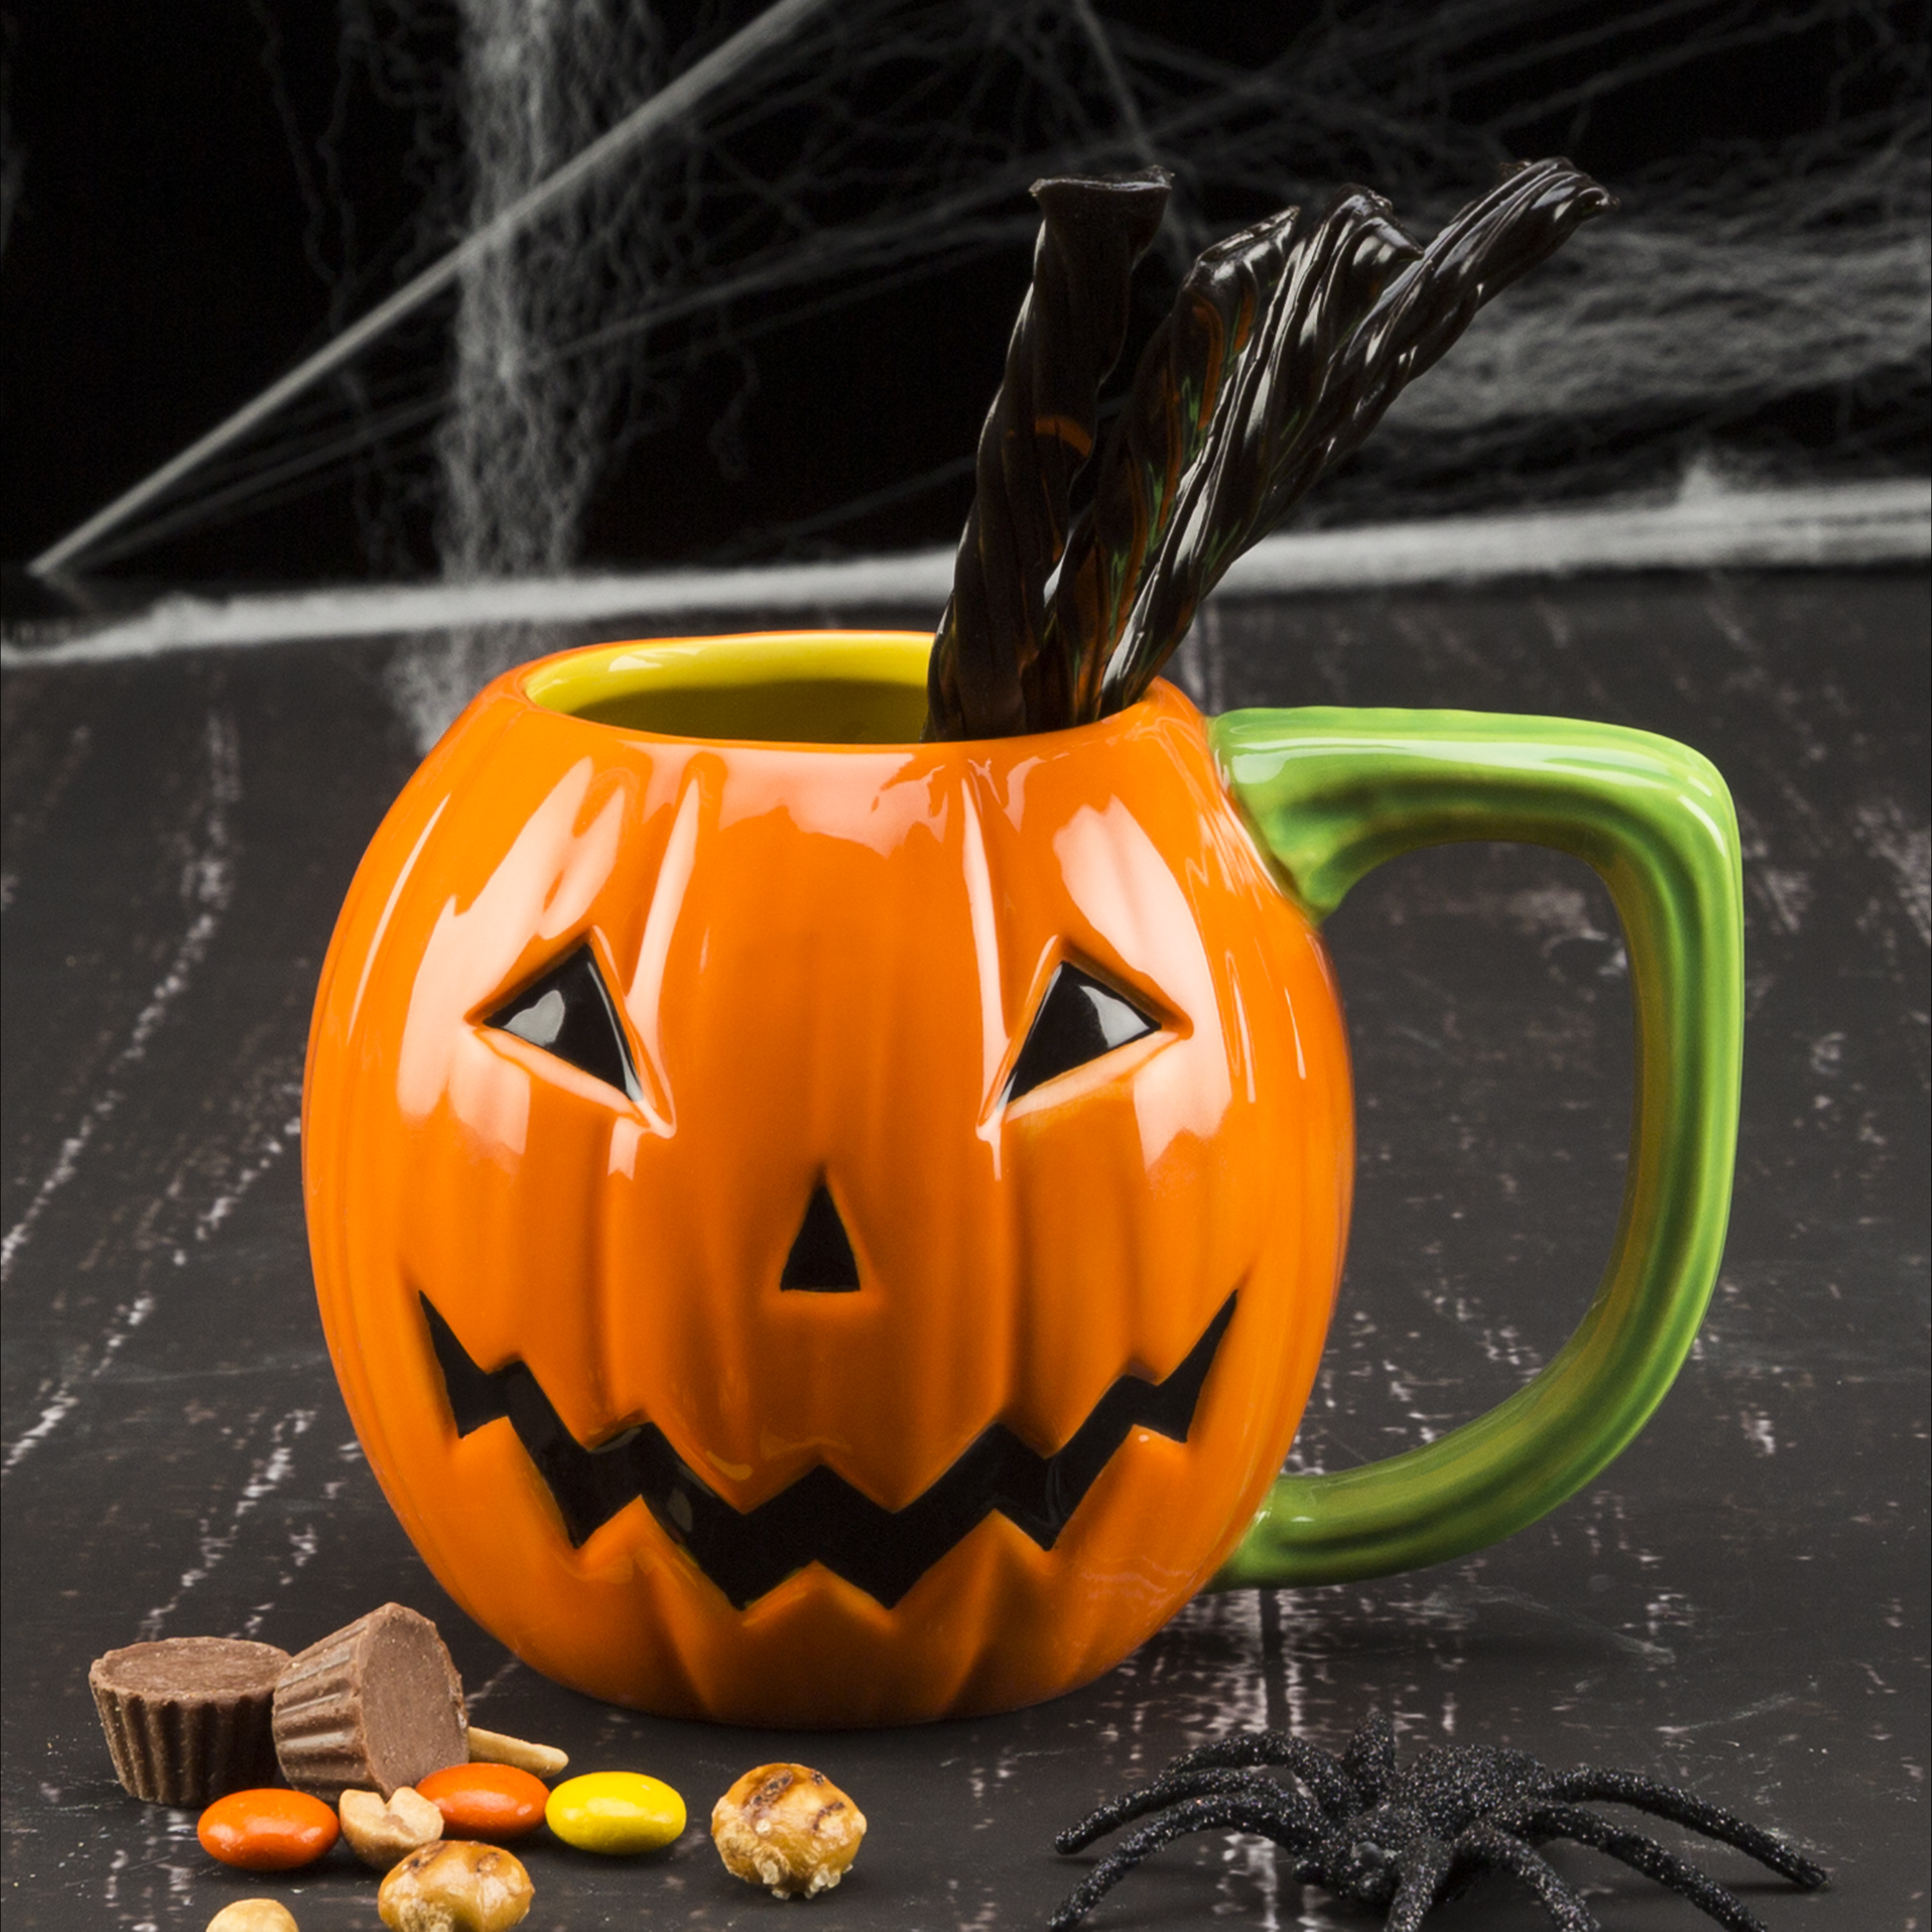 Halloween 15 ounce Coffee Mug and Spoon, Jack O' Lantern slideshow image 3